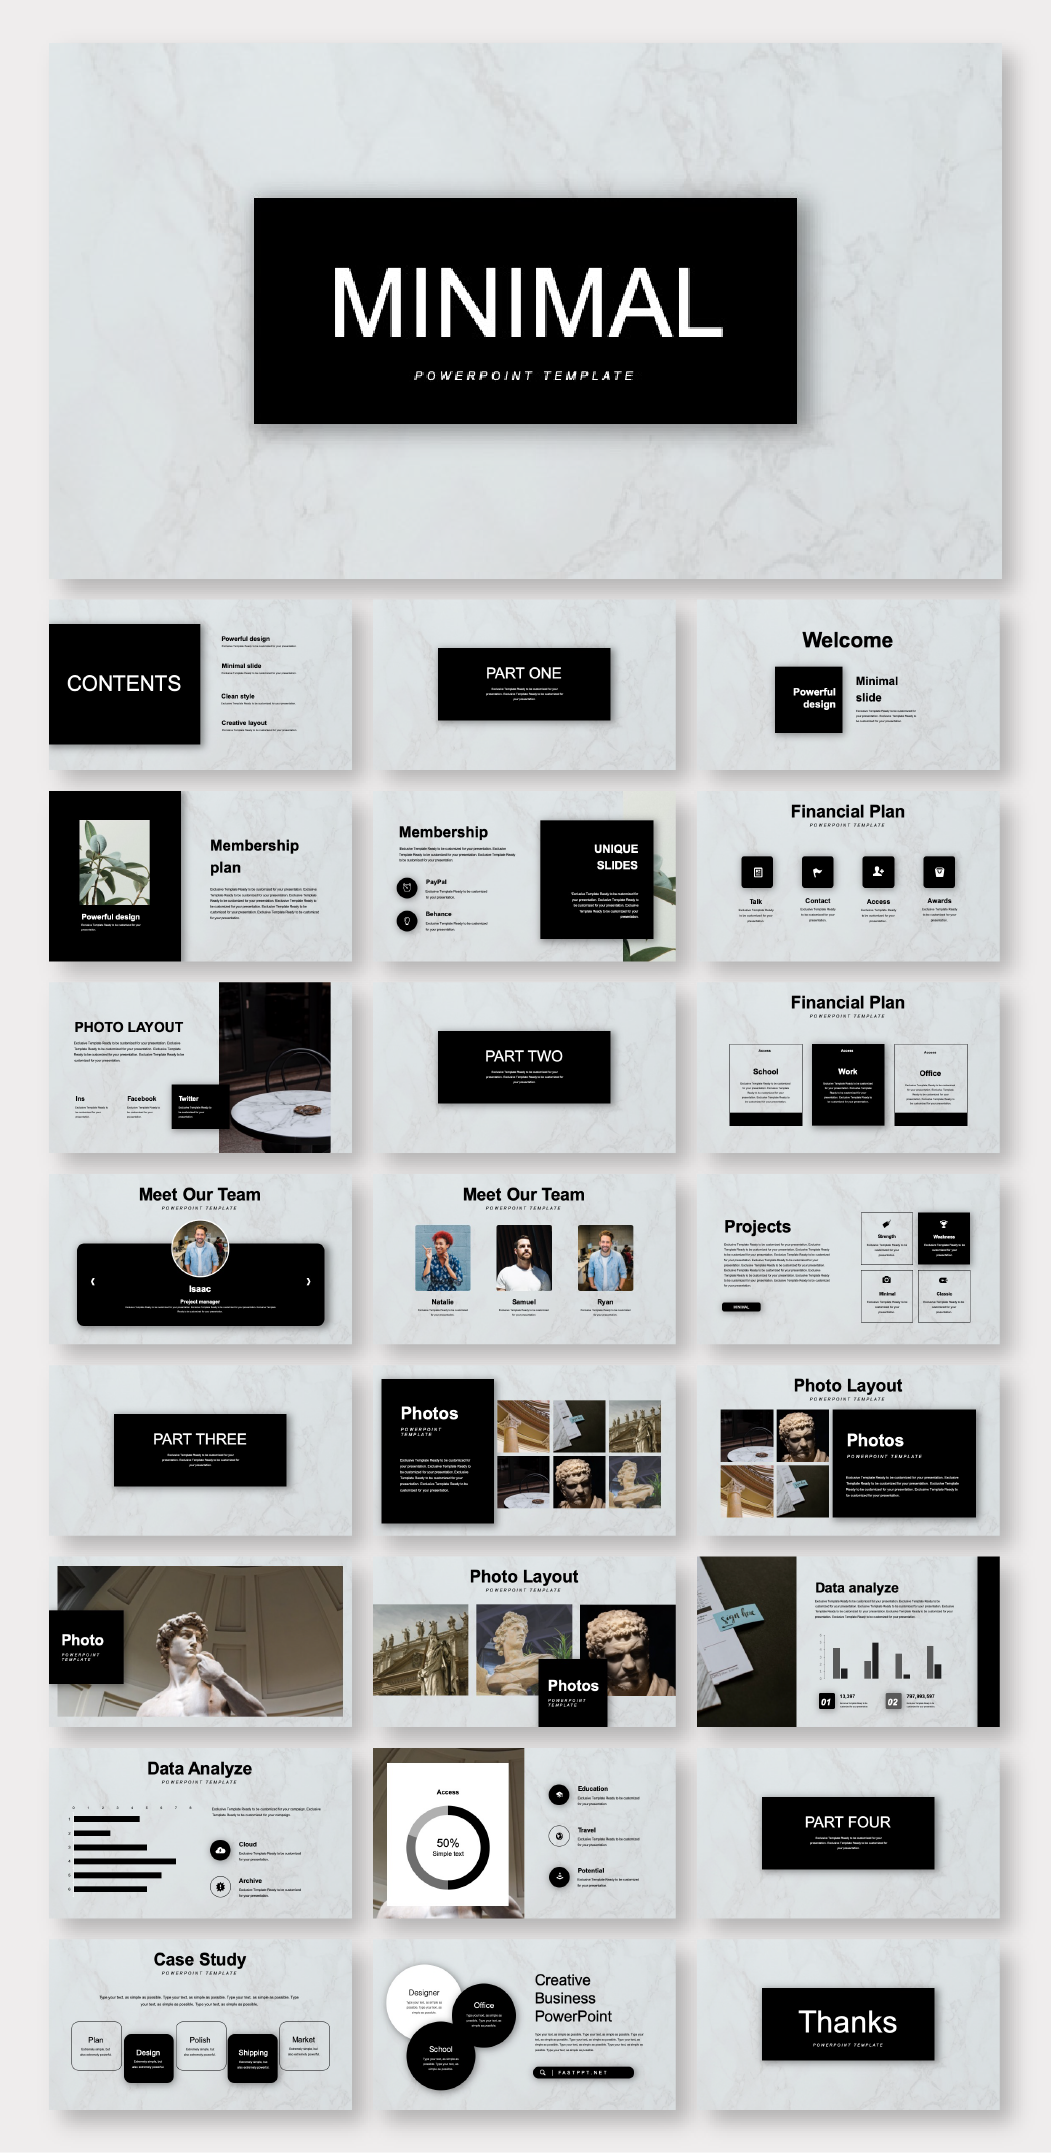 Black & Marble Minimalist Business Plan Presentation Template – Original and high quality PowerPoint Templates download